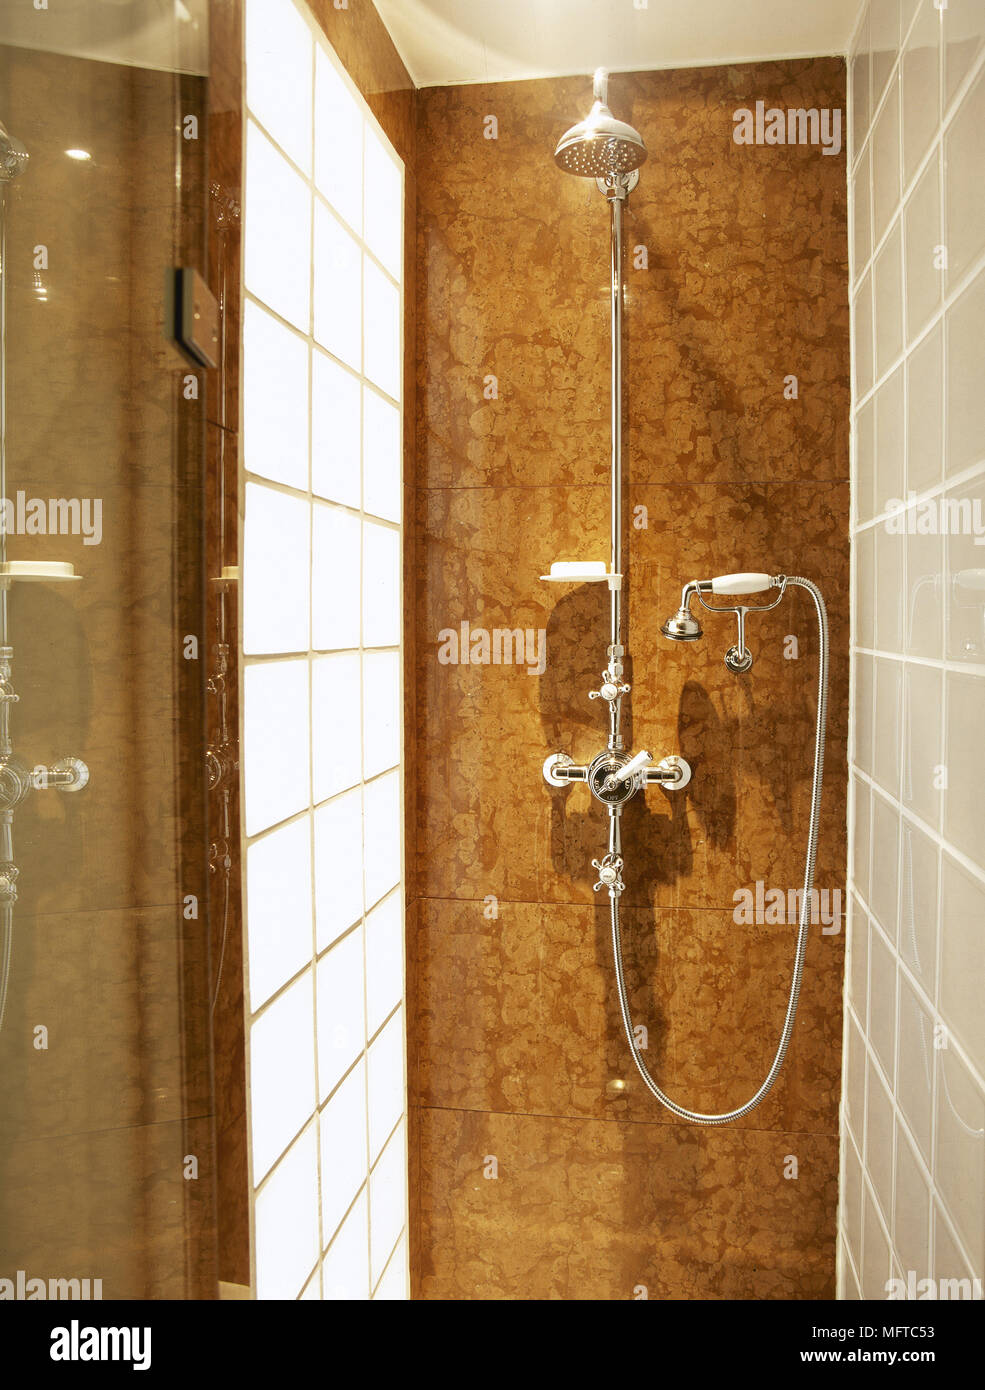 Modern bathroom detail of a shower stall with tile walls and a glass ...